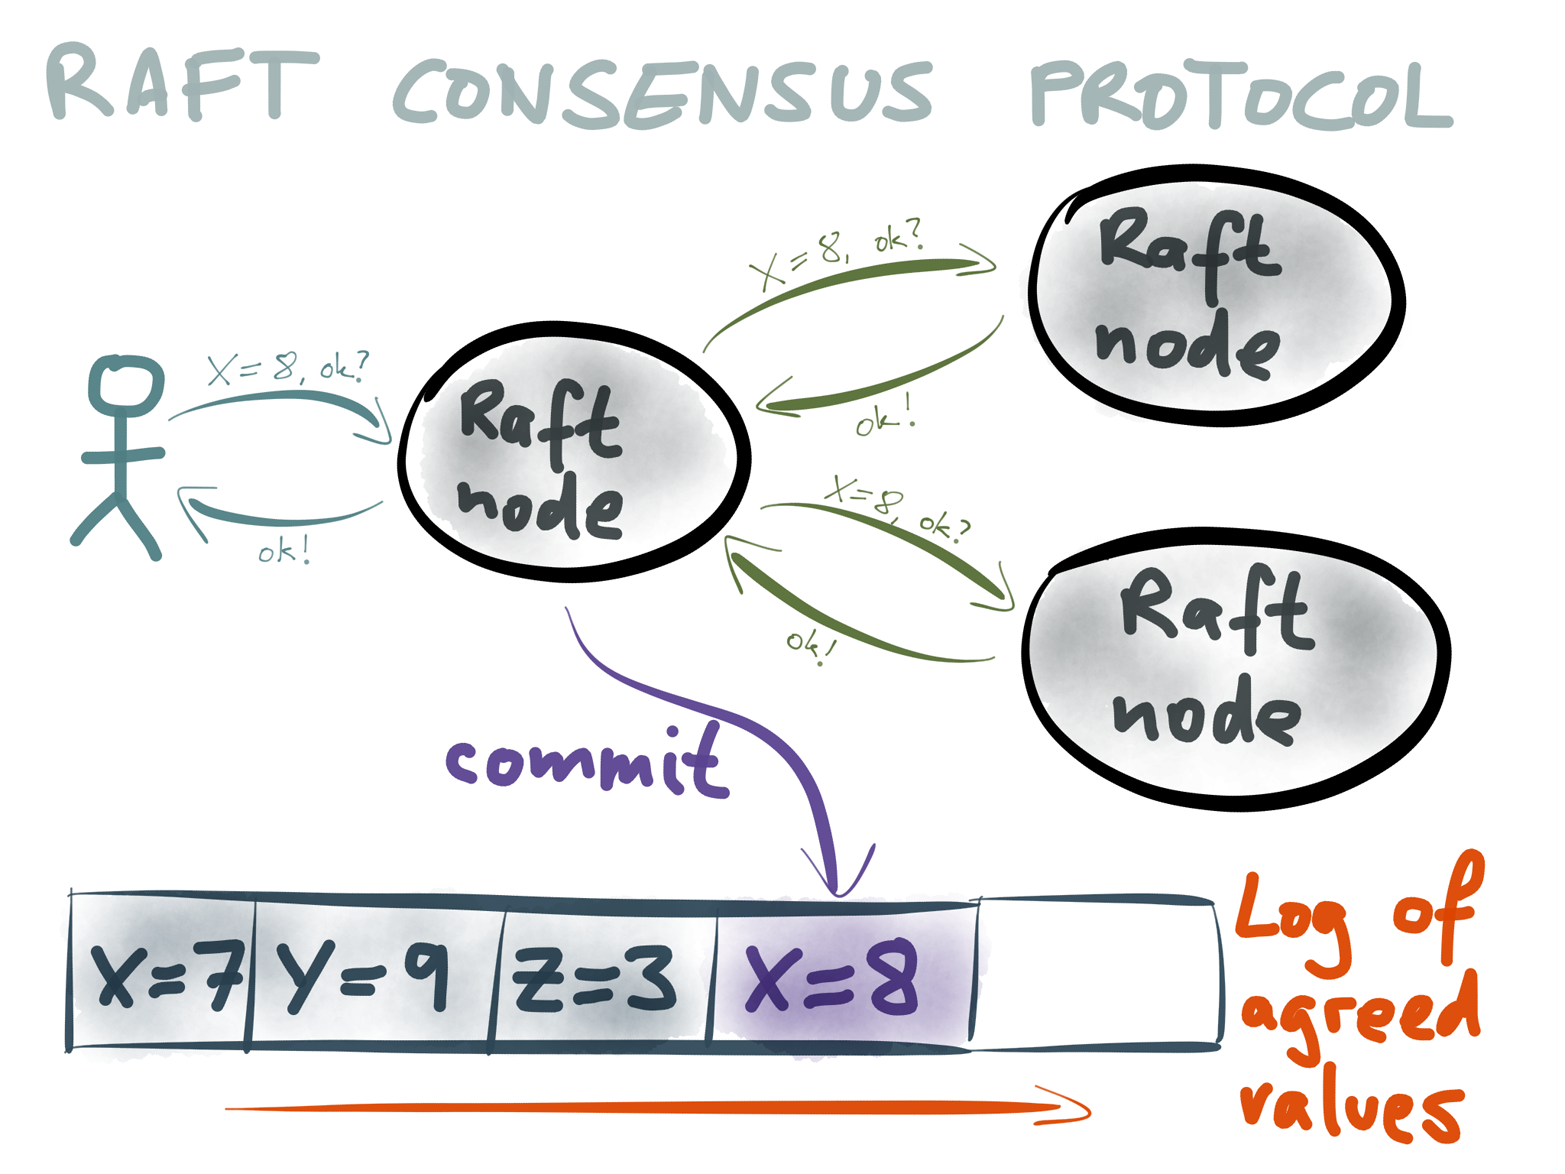 The Raft protocol provides consensus not just for a single value, but a log of agreed values.